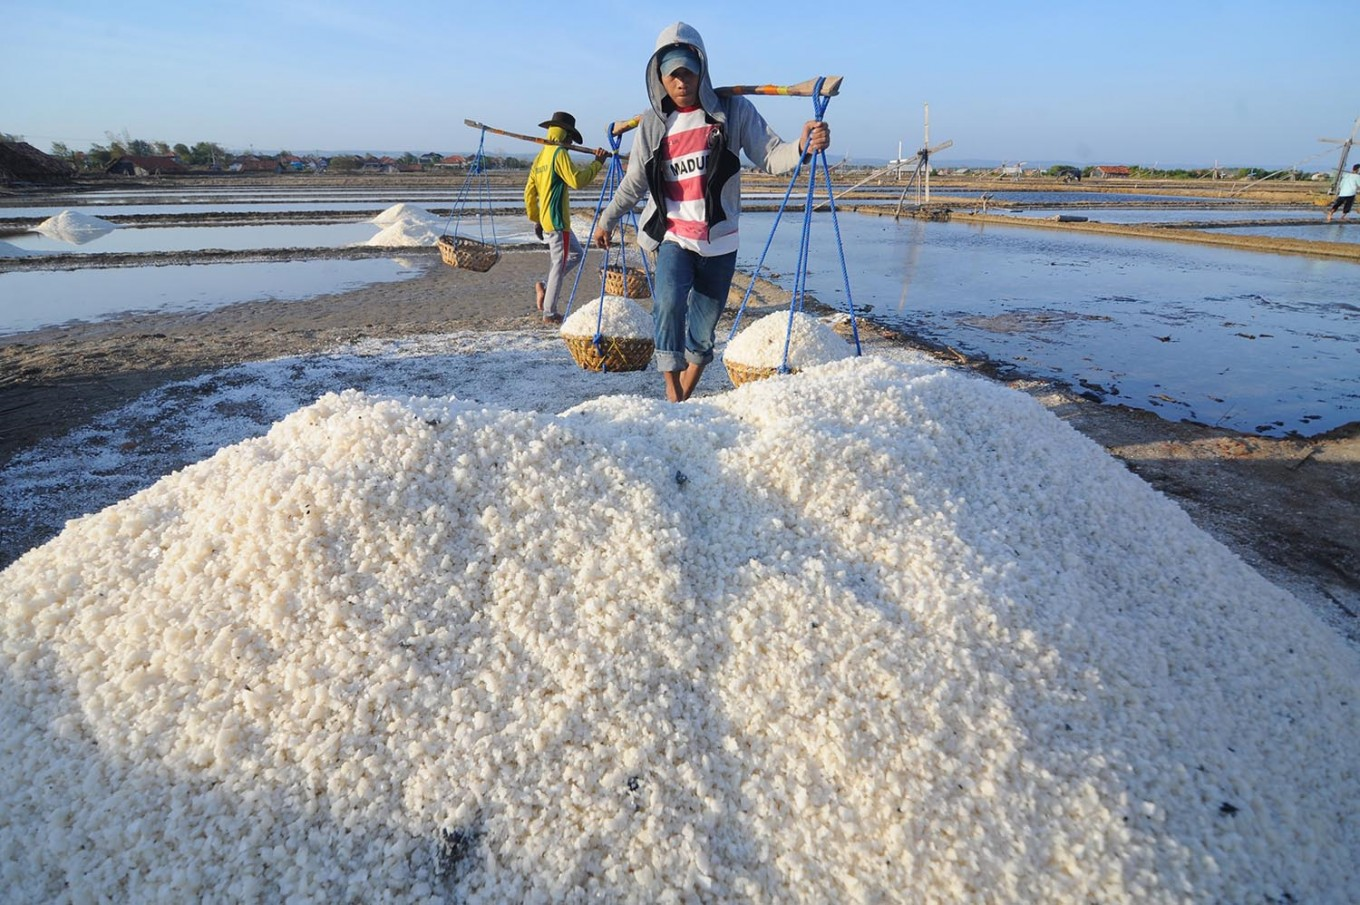 Minister blames 'excessive' imports for salt price drop